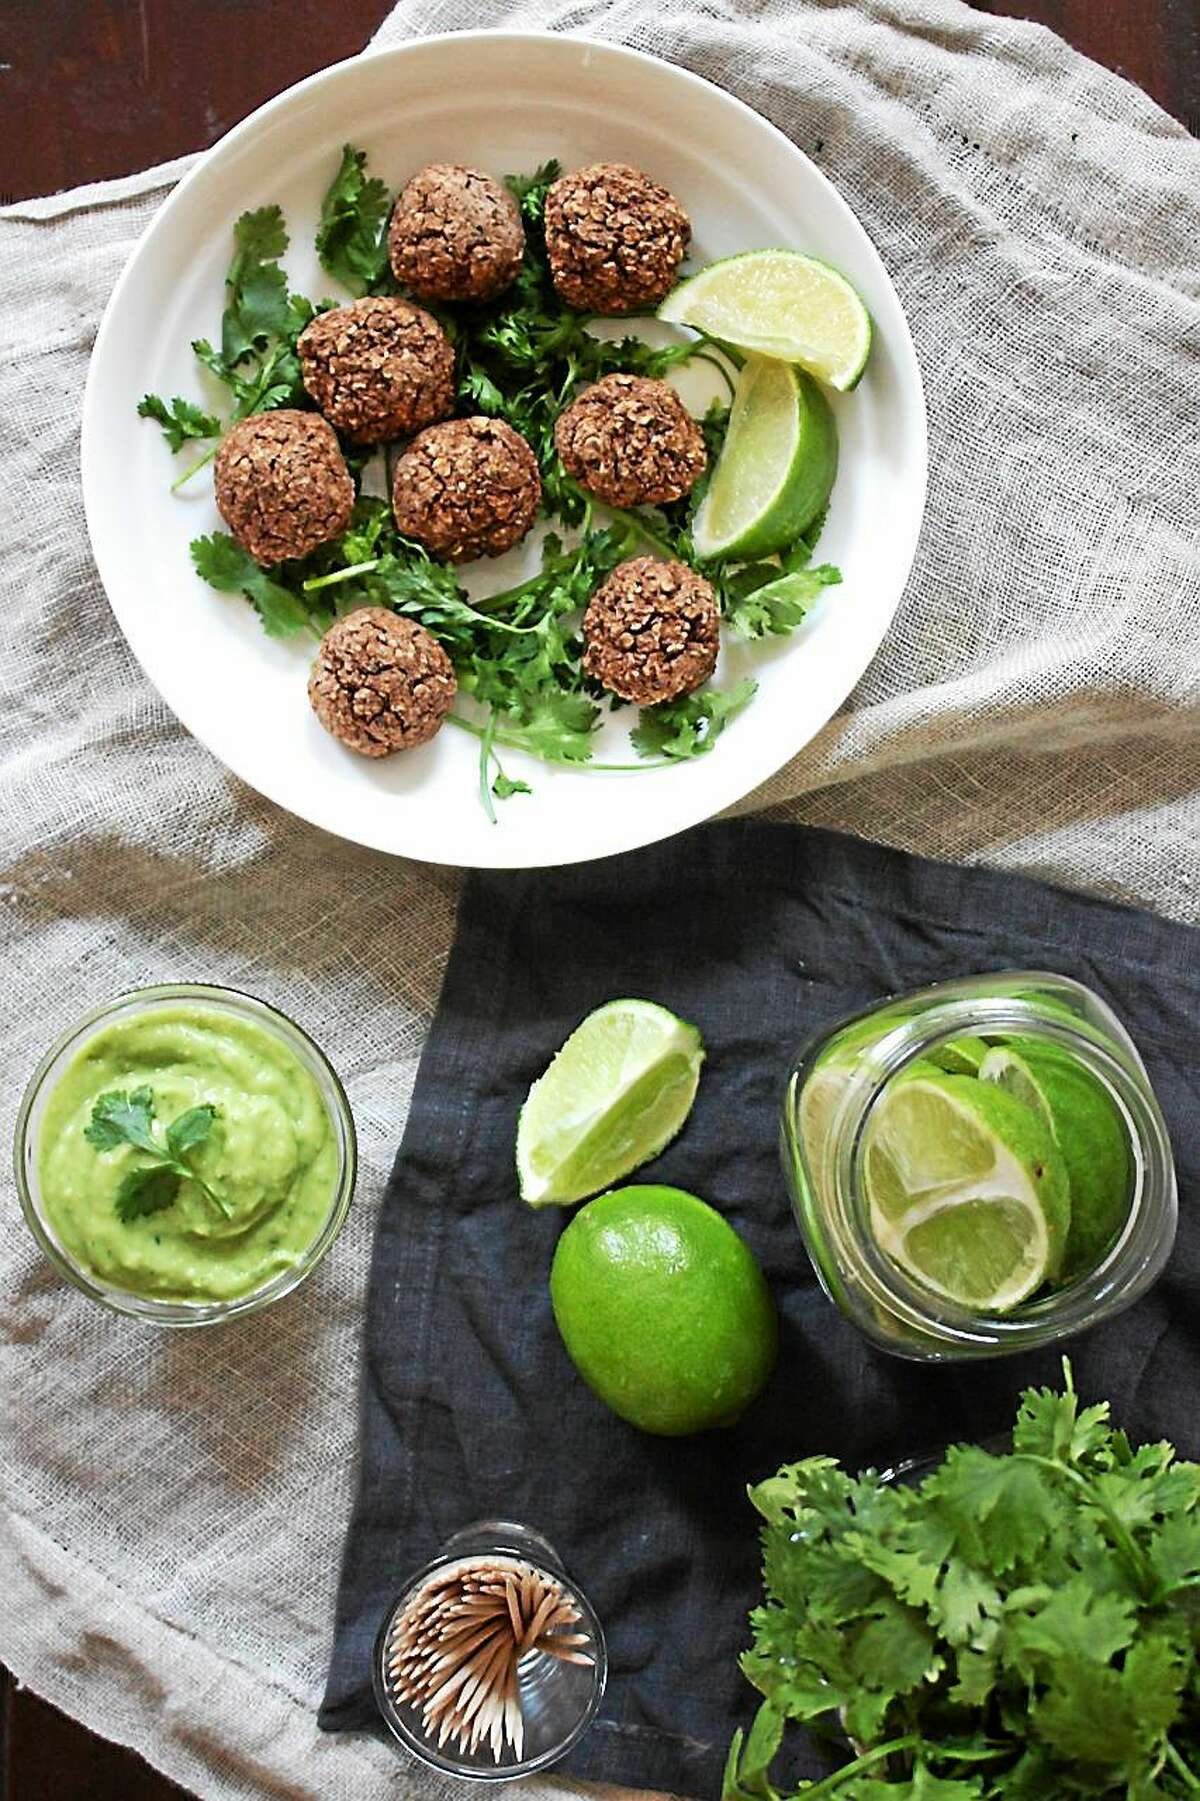 Vegan Black Bean Balls pack a healthy dose of protein.